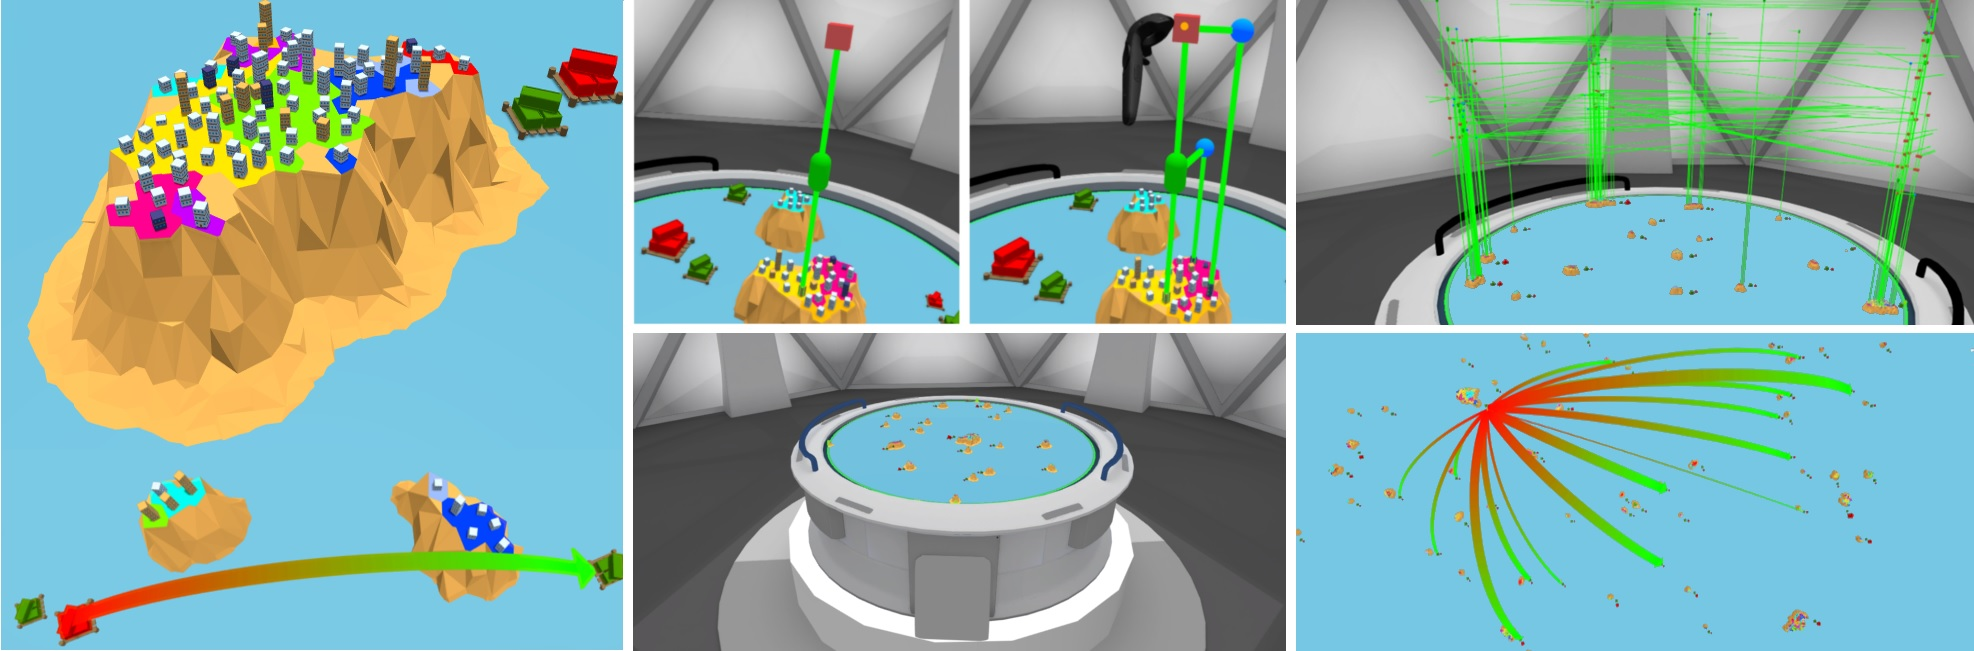 Immersive Exploration of OSGi-based Software Systems in Virtual Reality